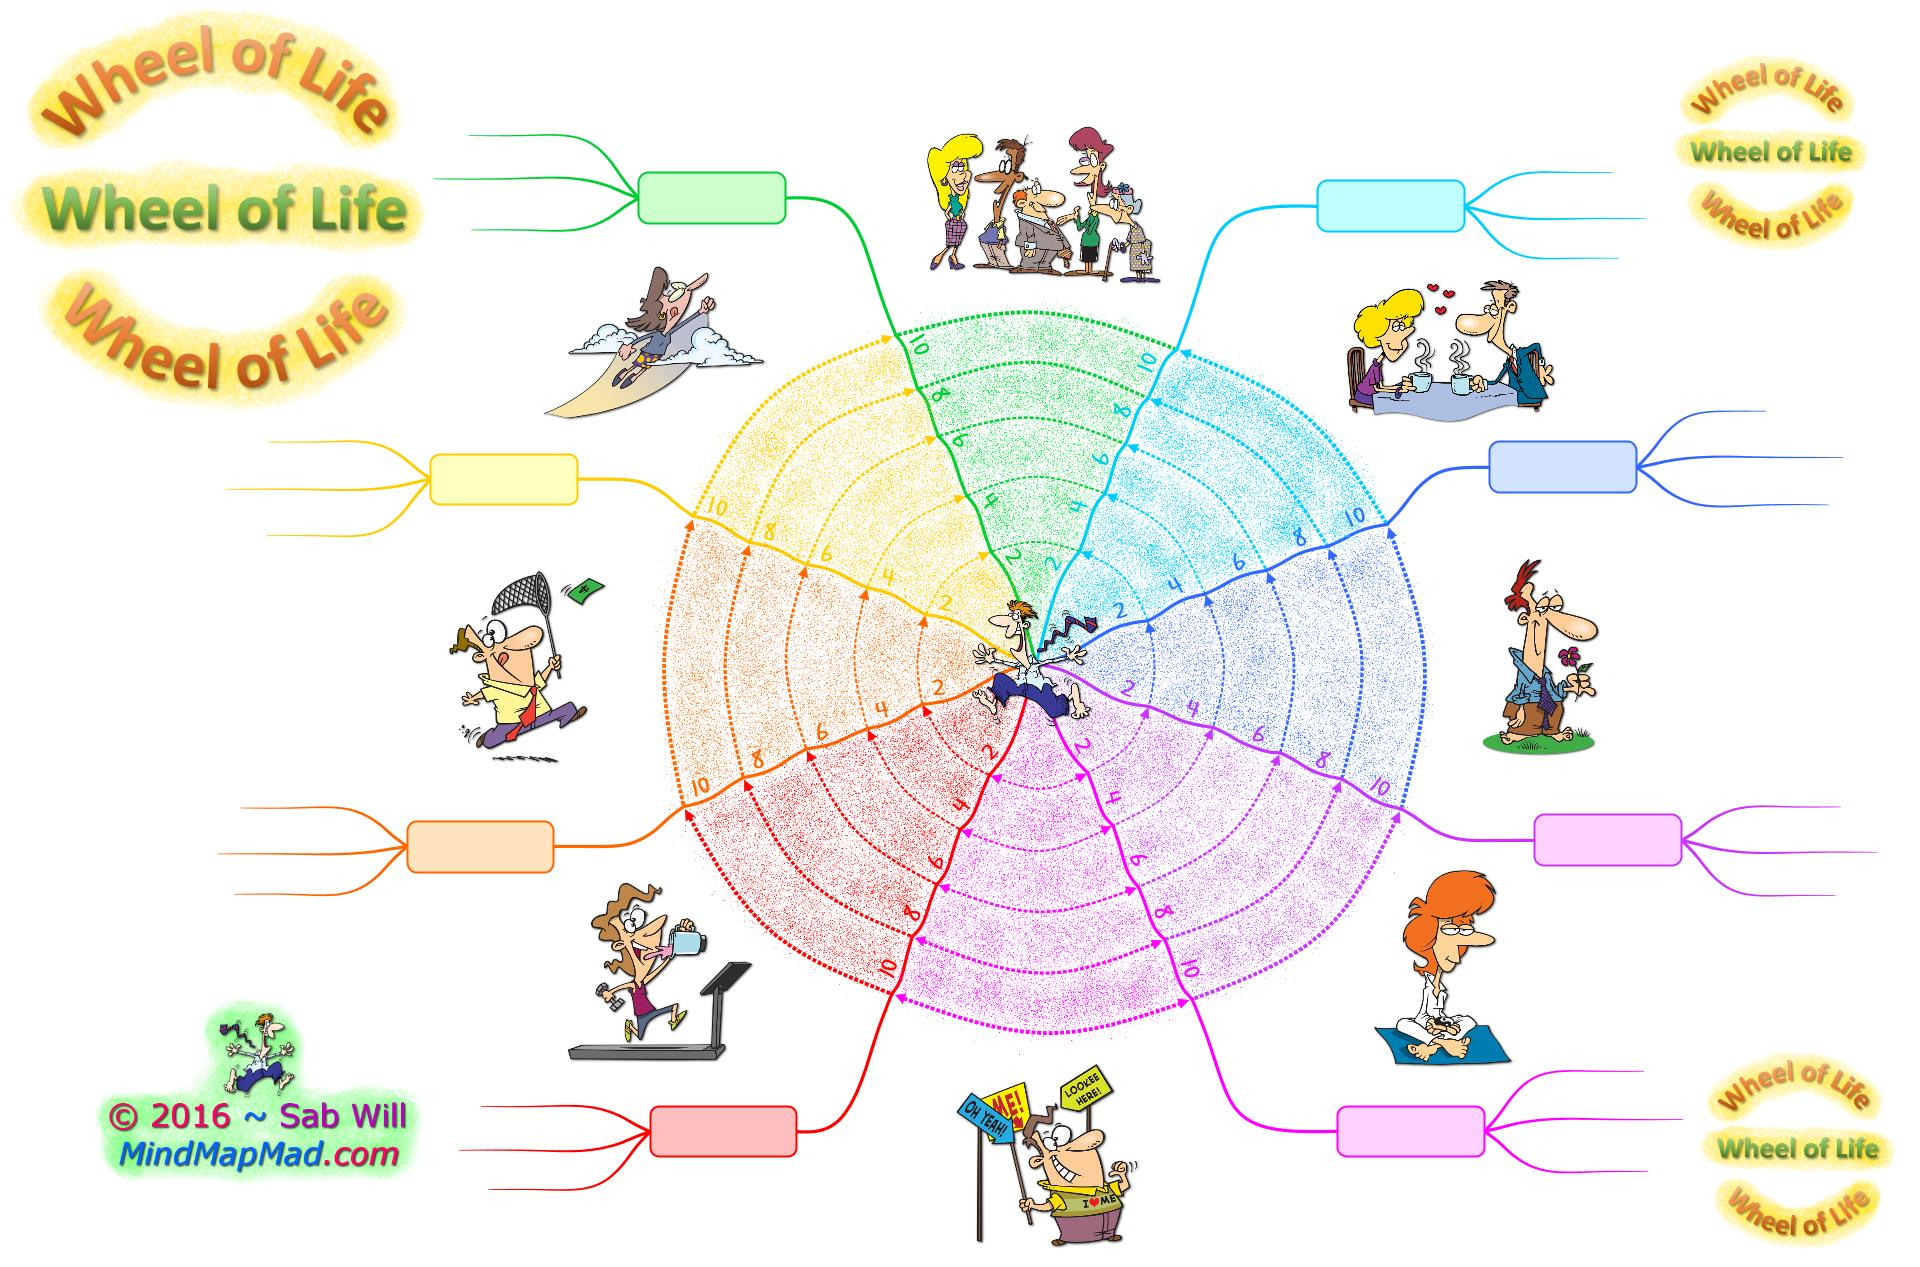 Mind Map Mad Training Resources Blog Archive Wheel Of Life Coaching Tool Mind Map Mad